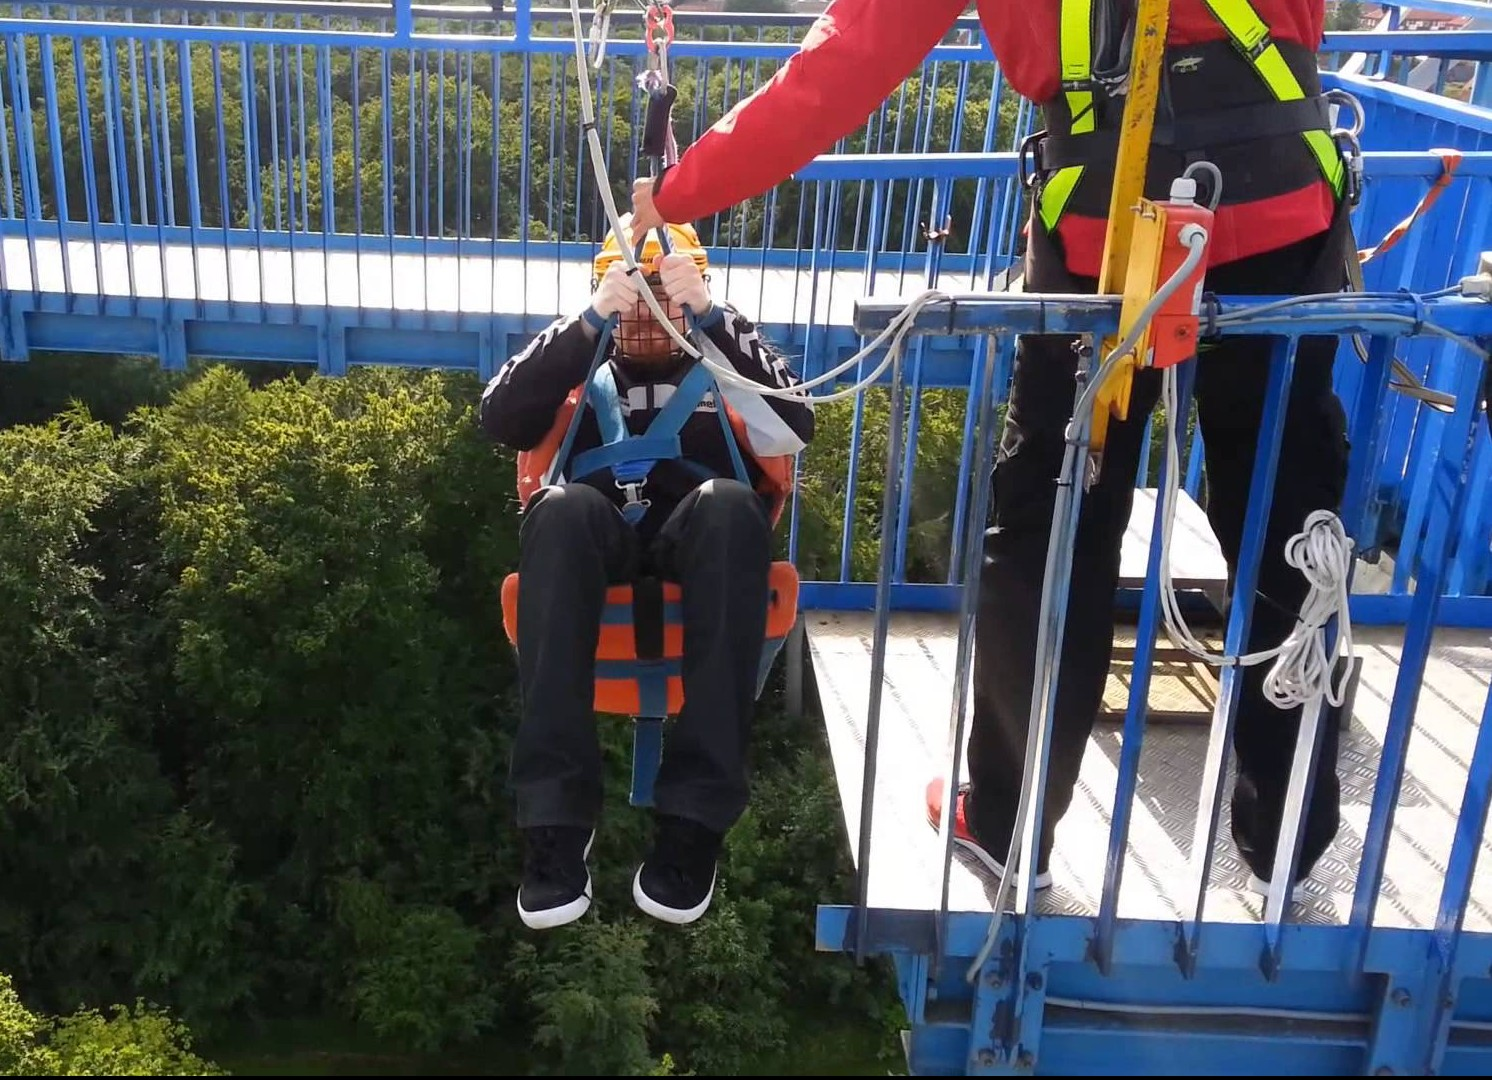 Denmark's Sky Tower Is Probably The Scariest Ride In The World